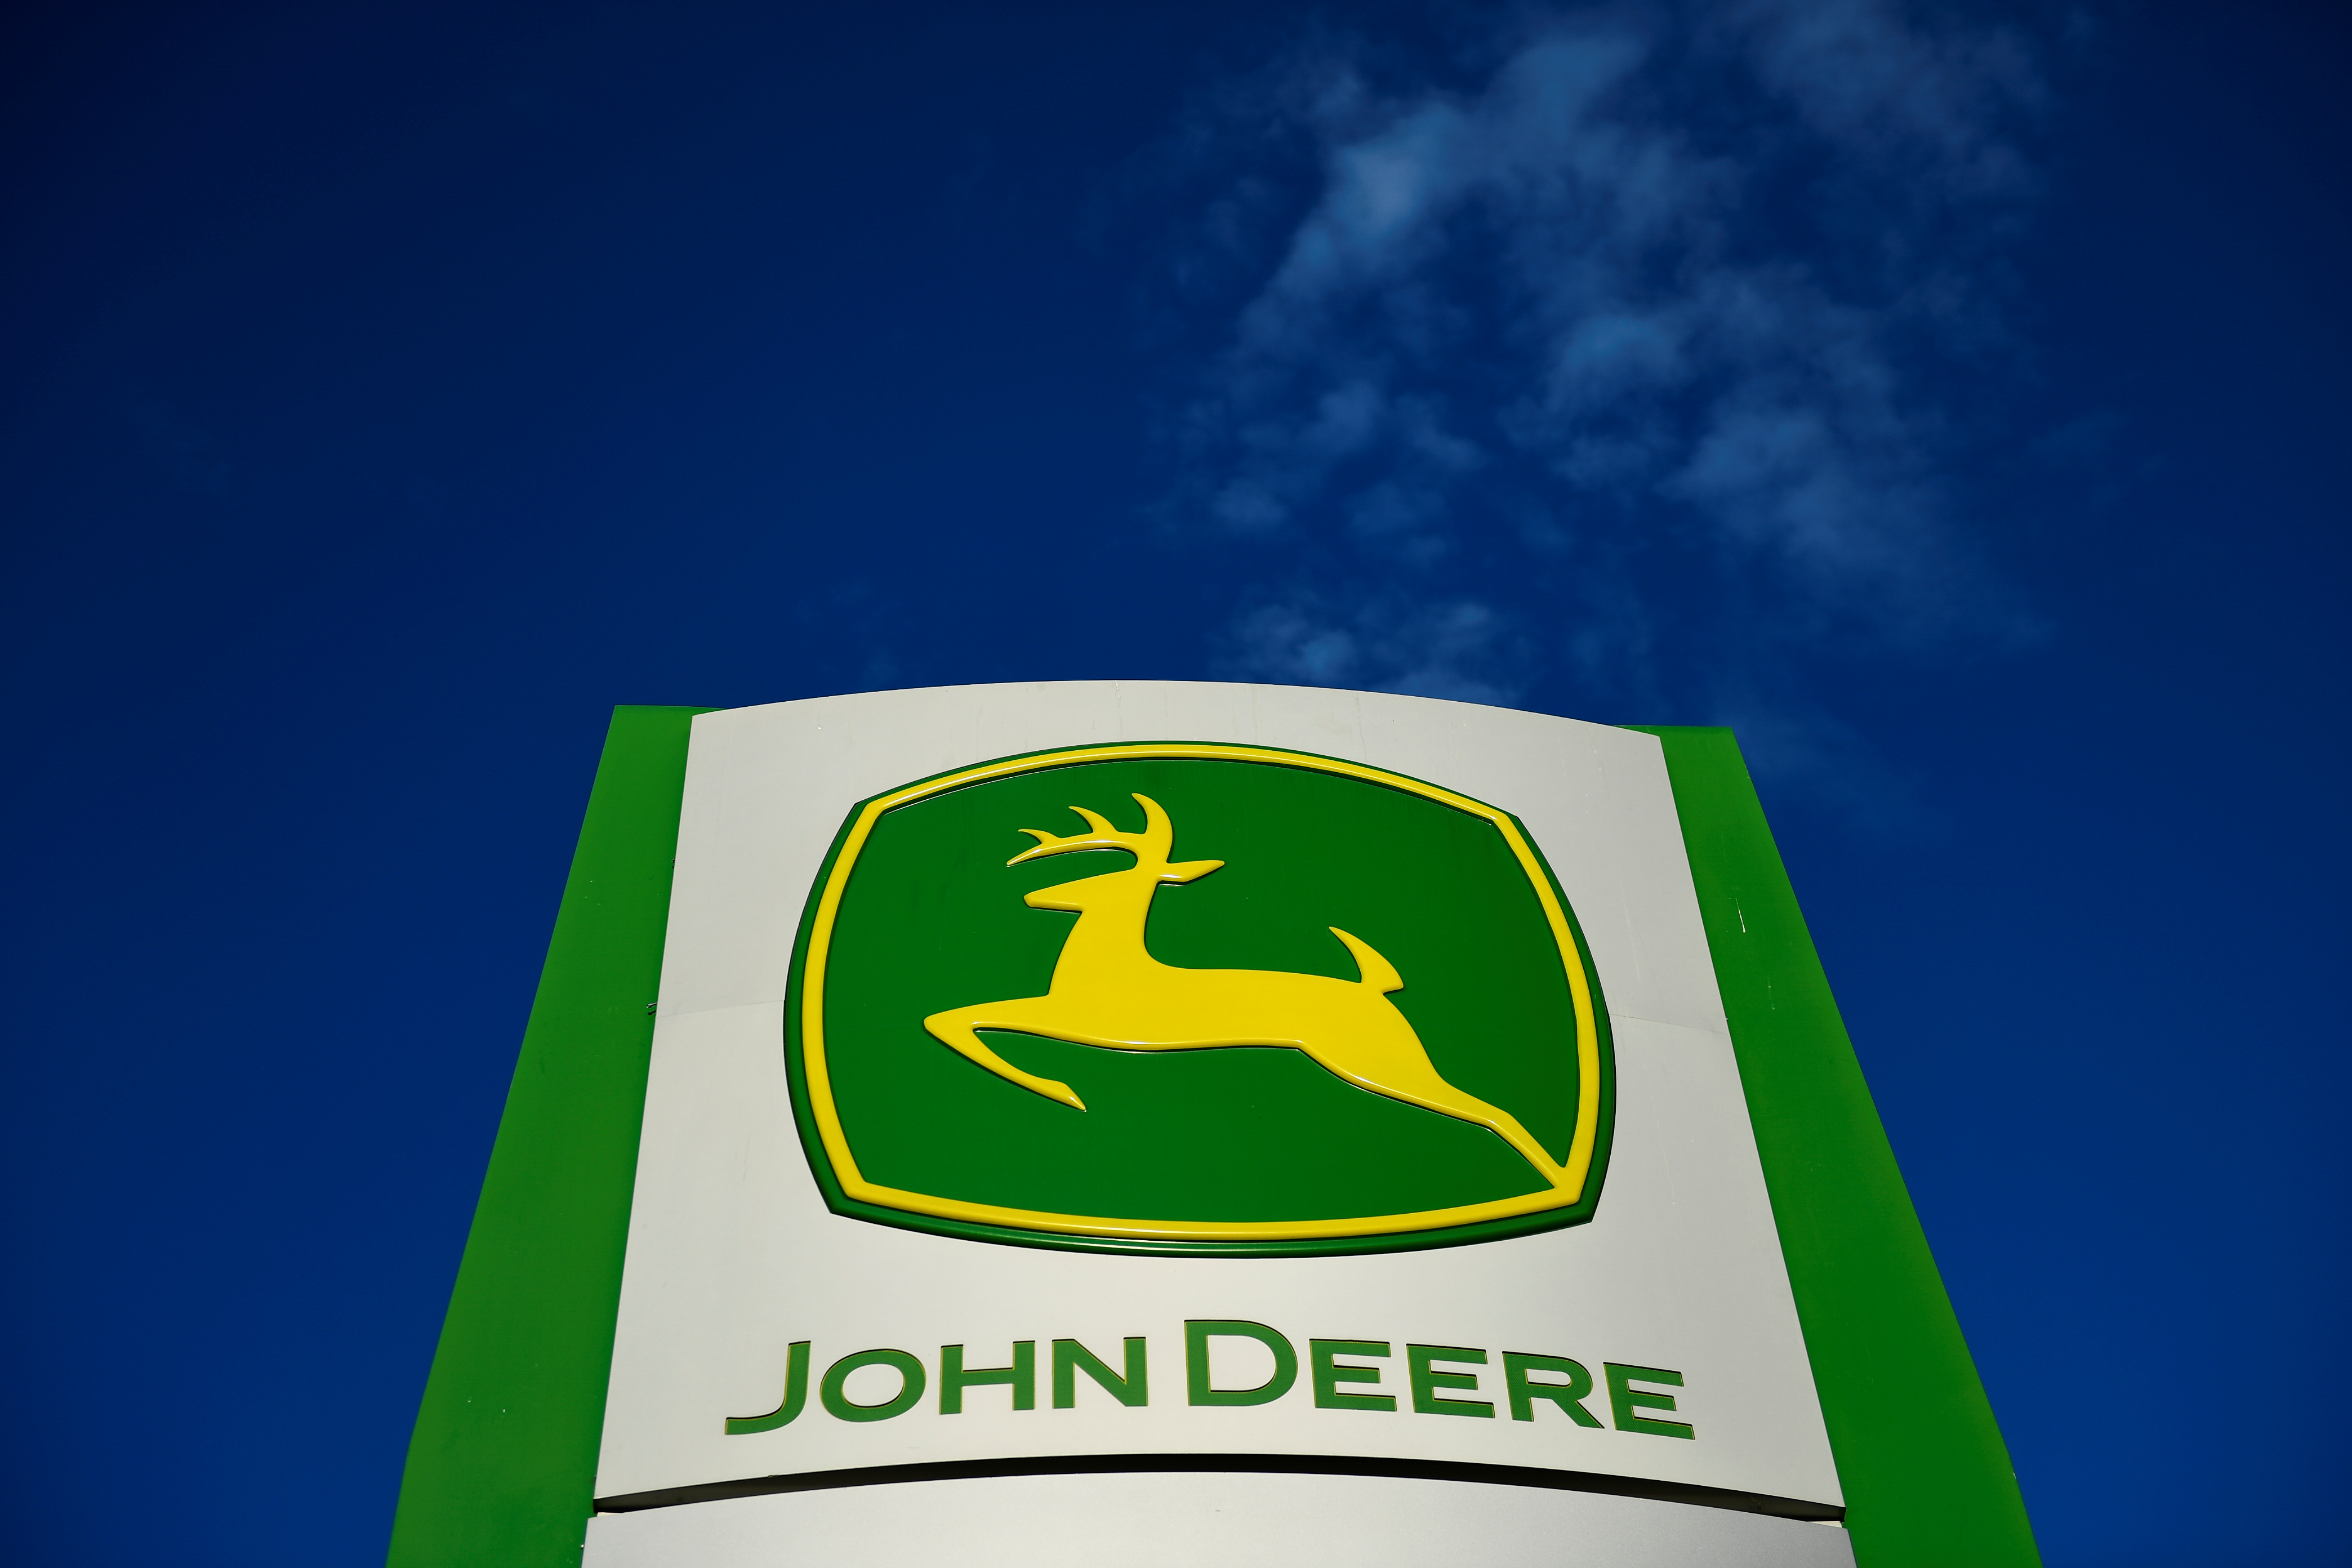 The leaping deer trademark logo is seen on a sign outside a John Deere dealership in Taylor, Texas, U.S., February 16, 2017. Picture taken February 16, 2017. REUTERS/Mohammad Khursheed